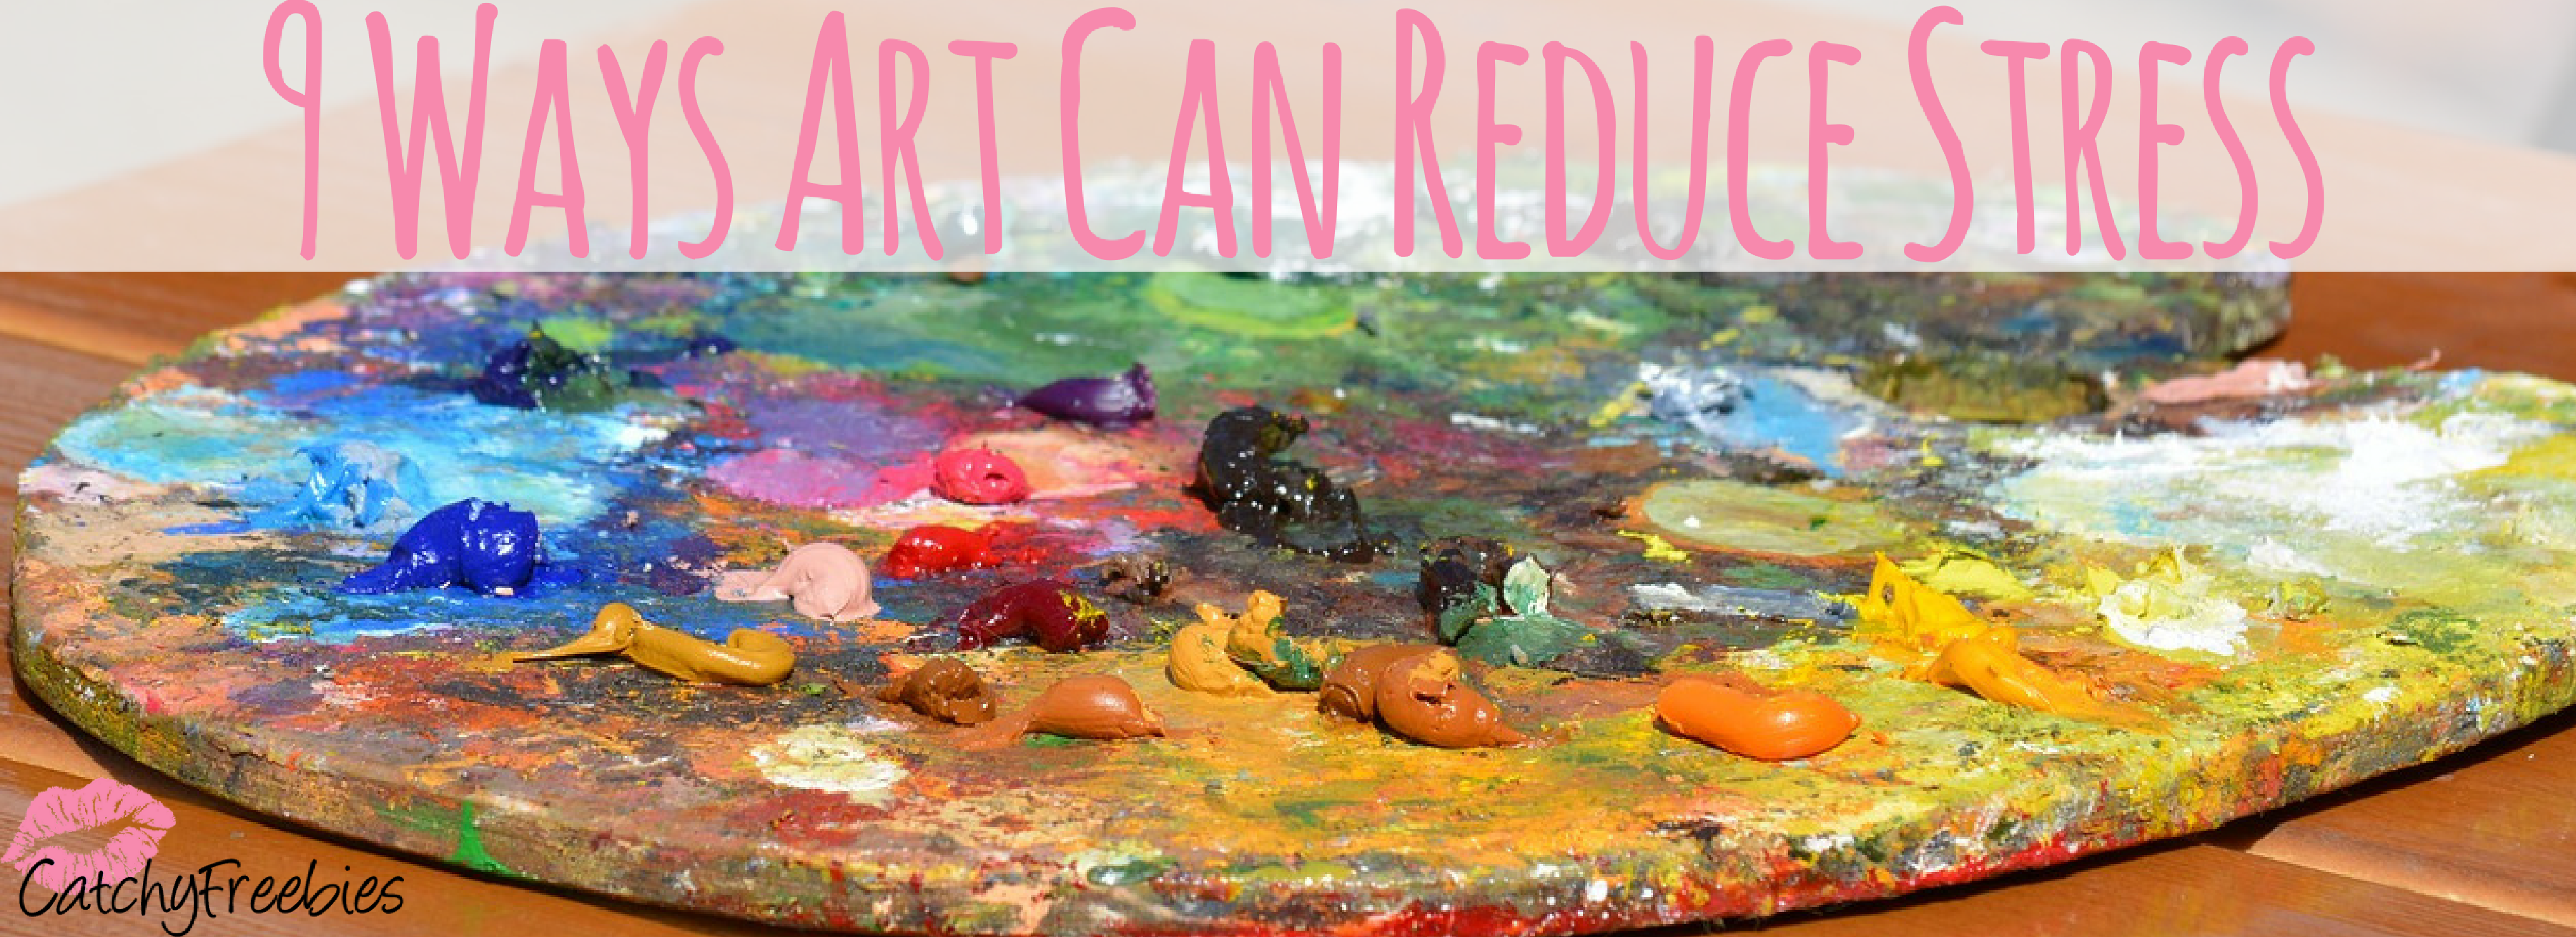 9 Ways Art Can Reduce Stress